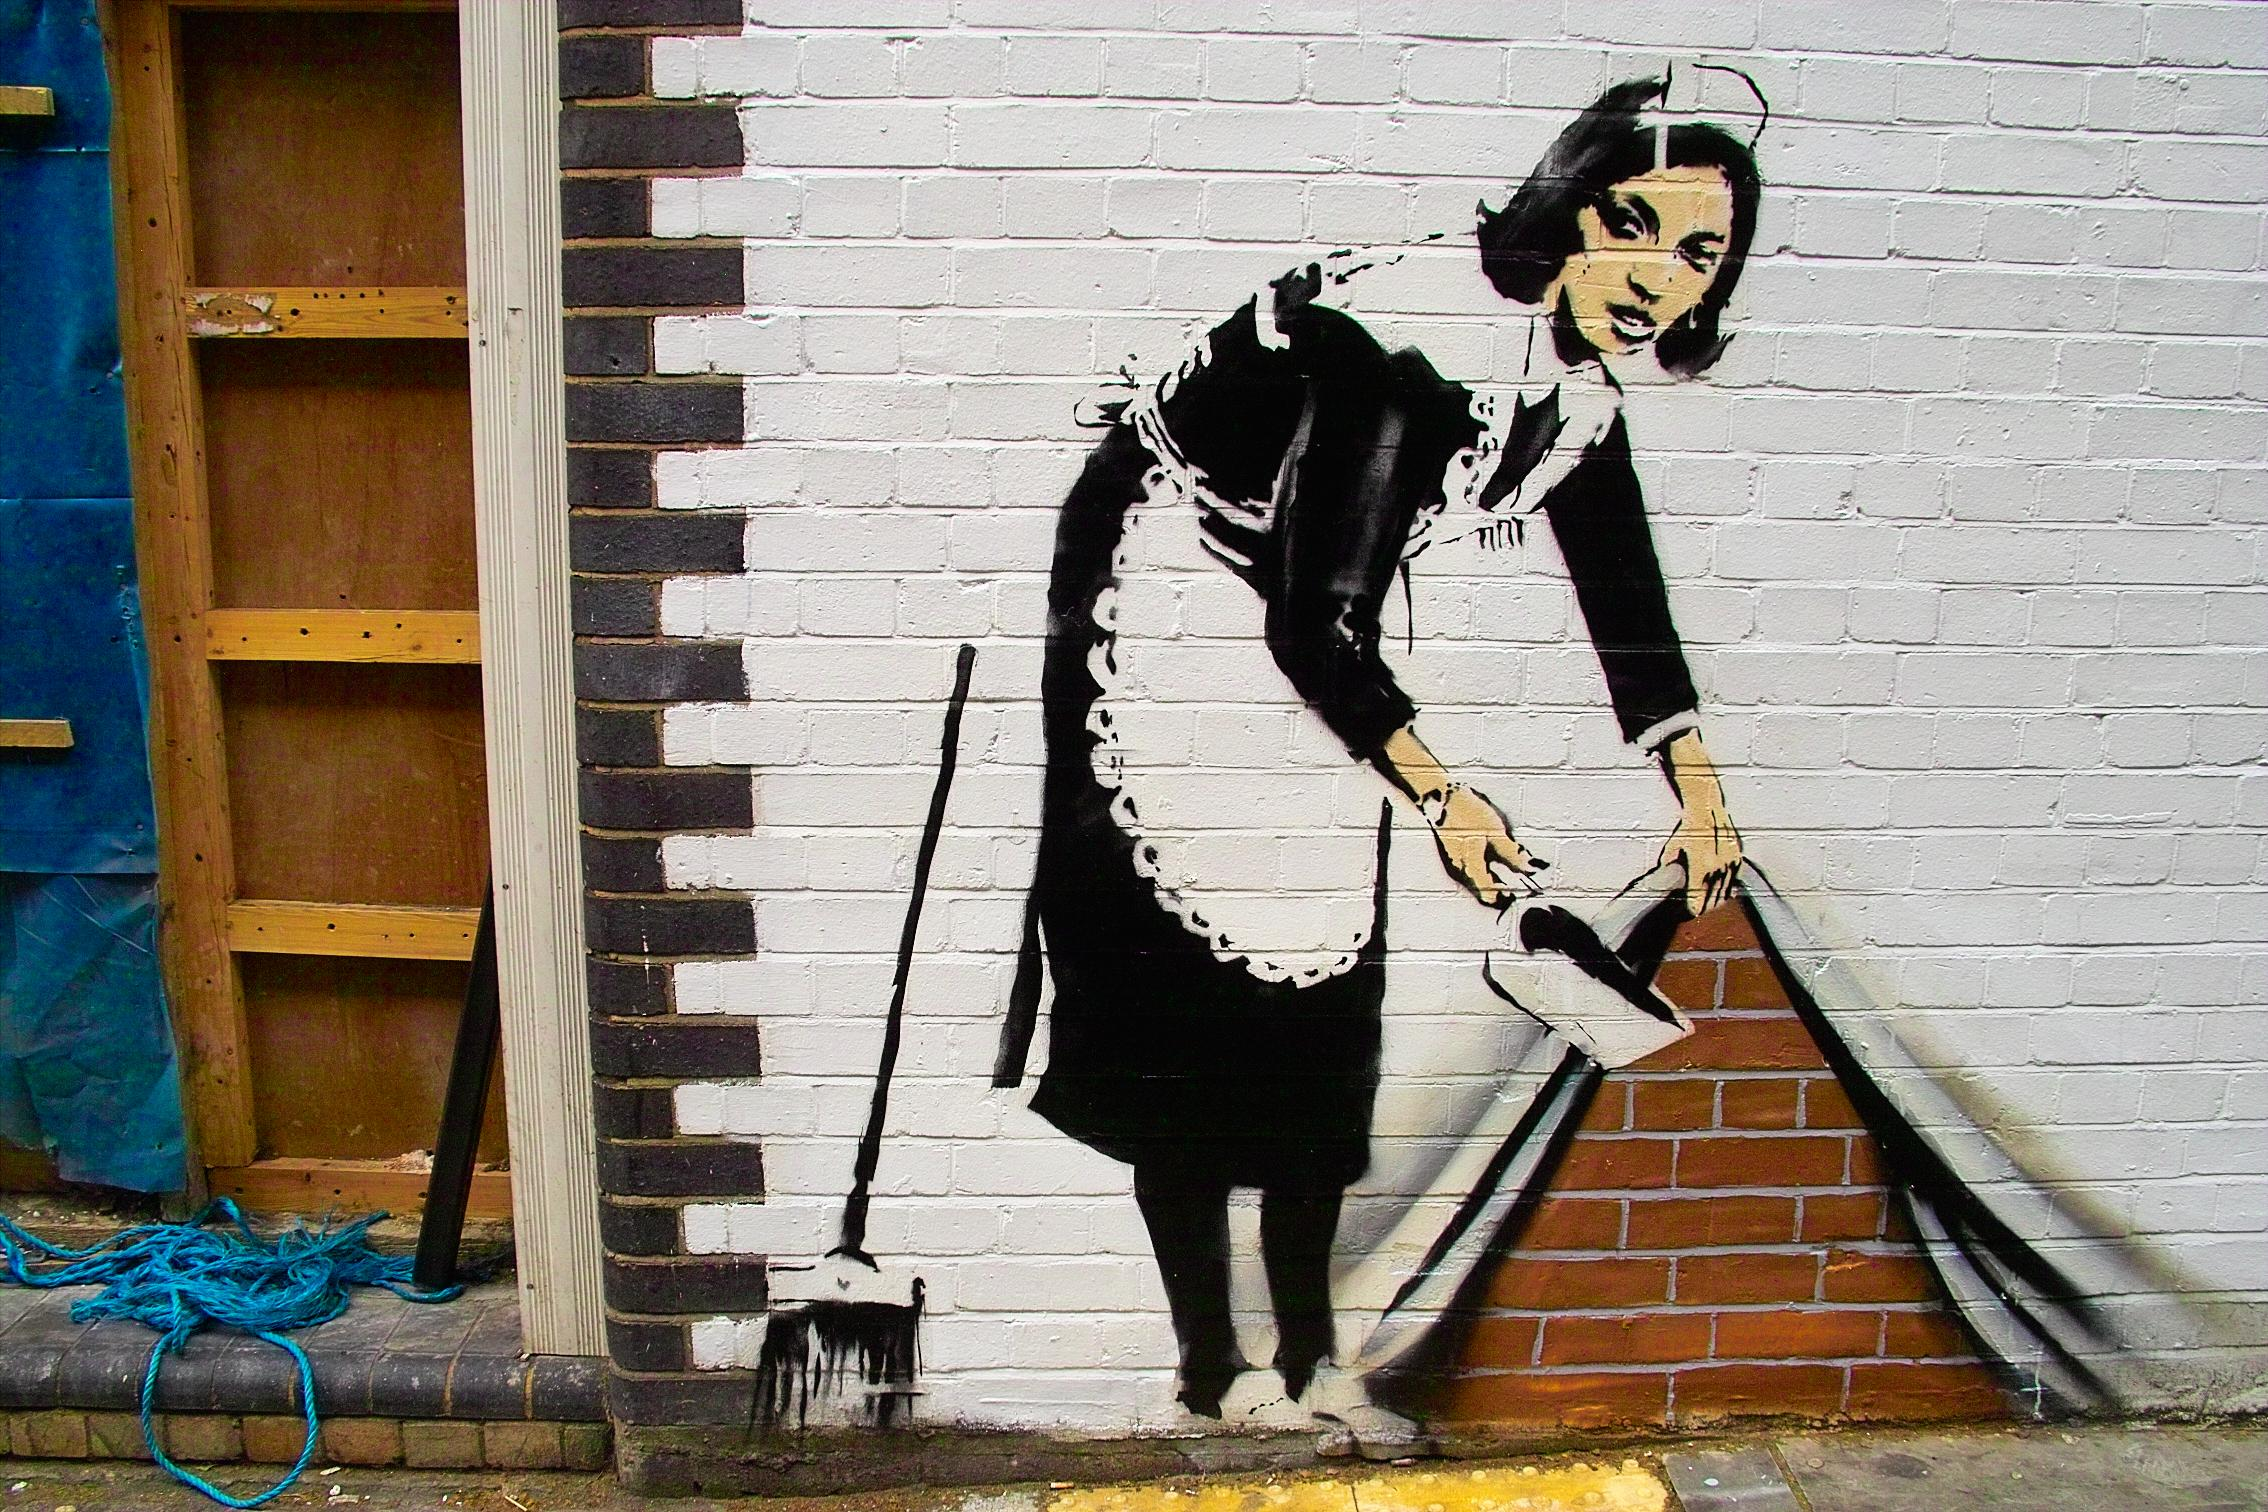 Banksy_-_Sweep_at_Hoxton.jpg